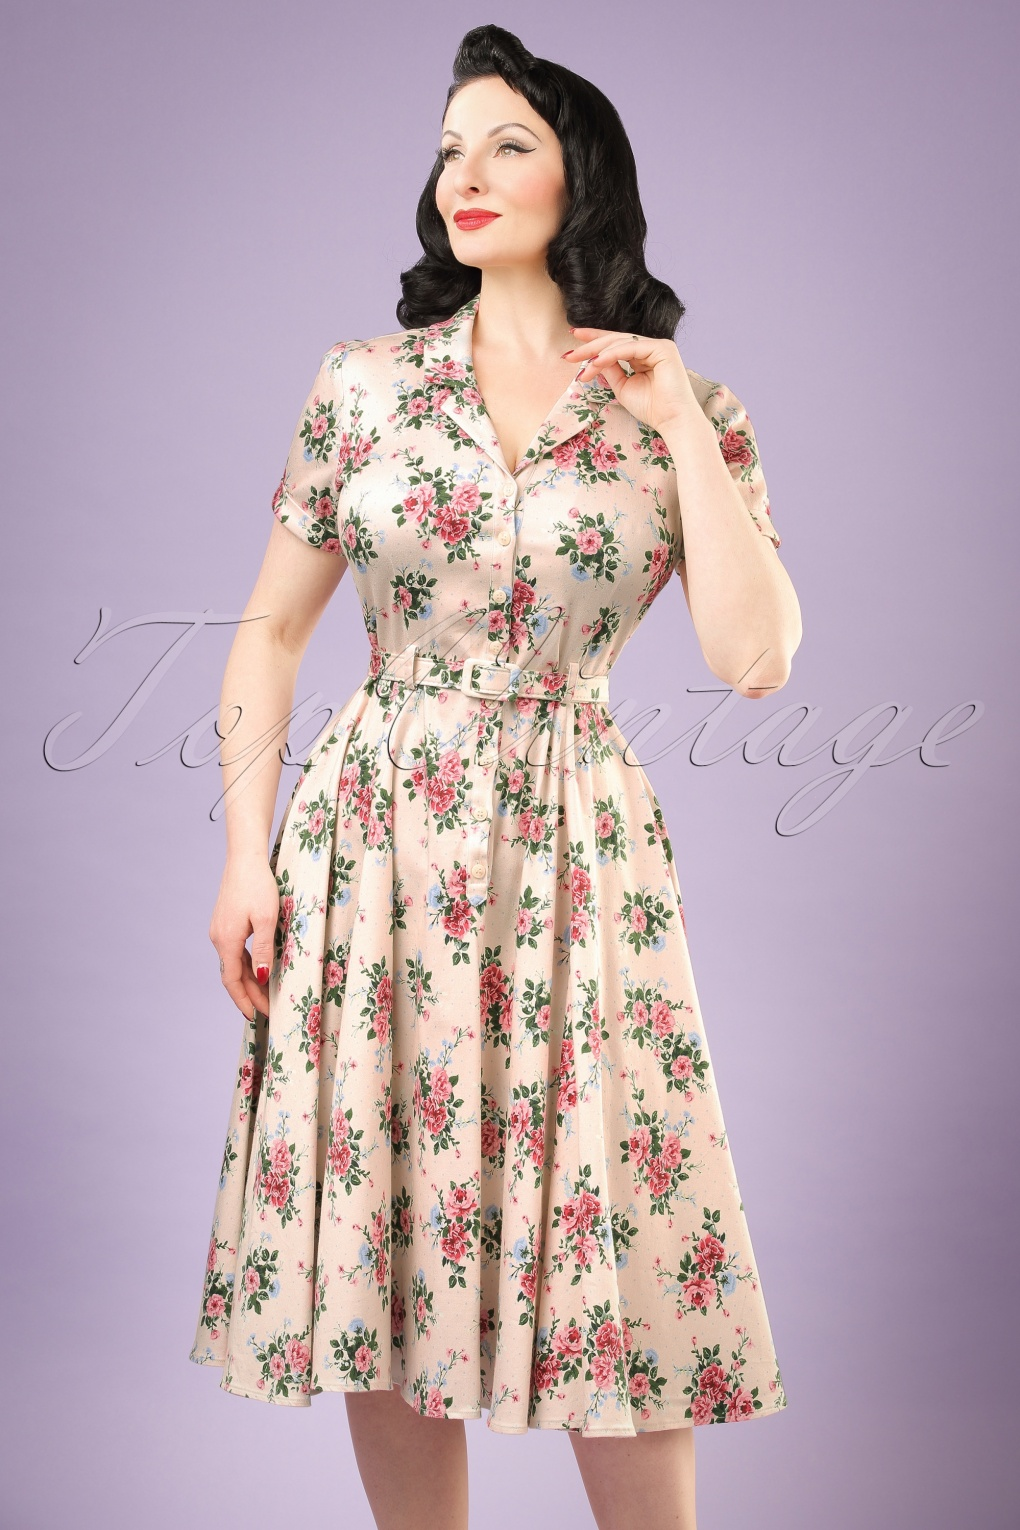 1940s Dresses and Clothing UK 40s Caterina Floral Swing Dress in Beige £53.16 AT vintagedancer.com